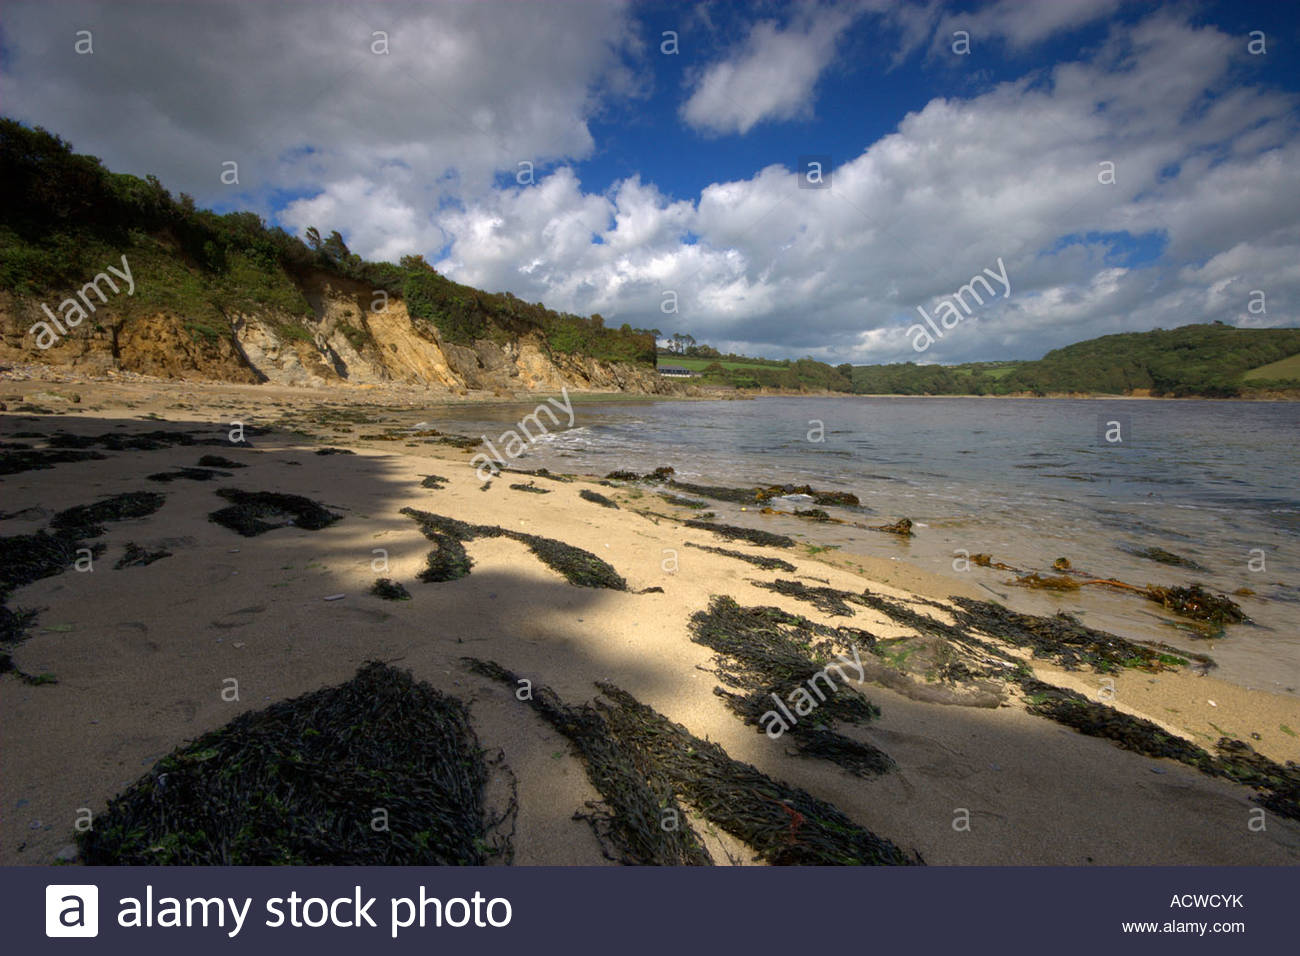 This image was taken very close to the mouth of the River Erme in the South Hams area of Devon - Stock Image